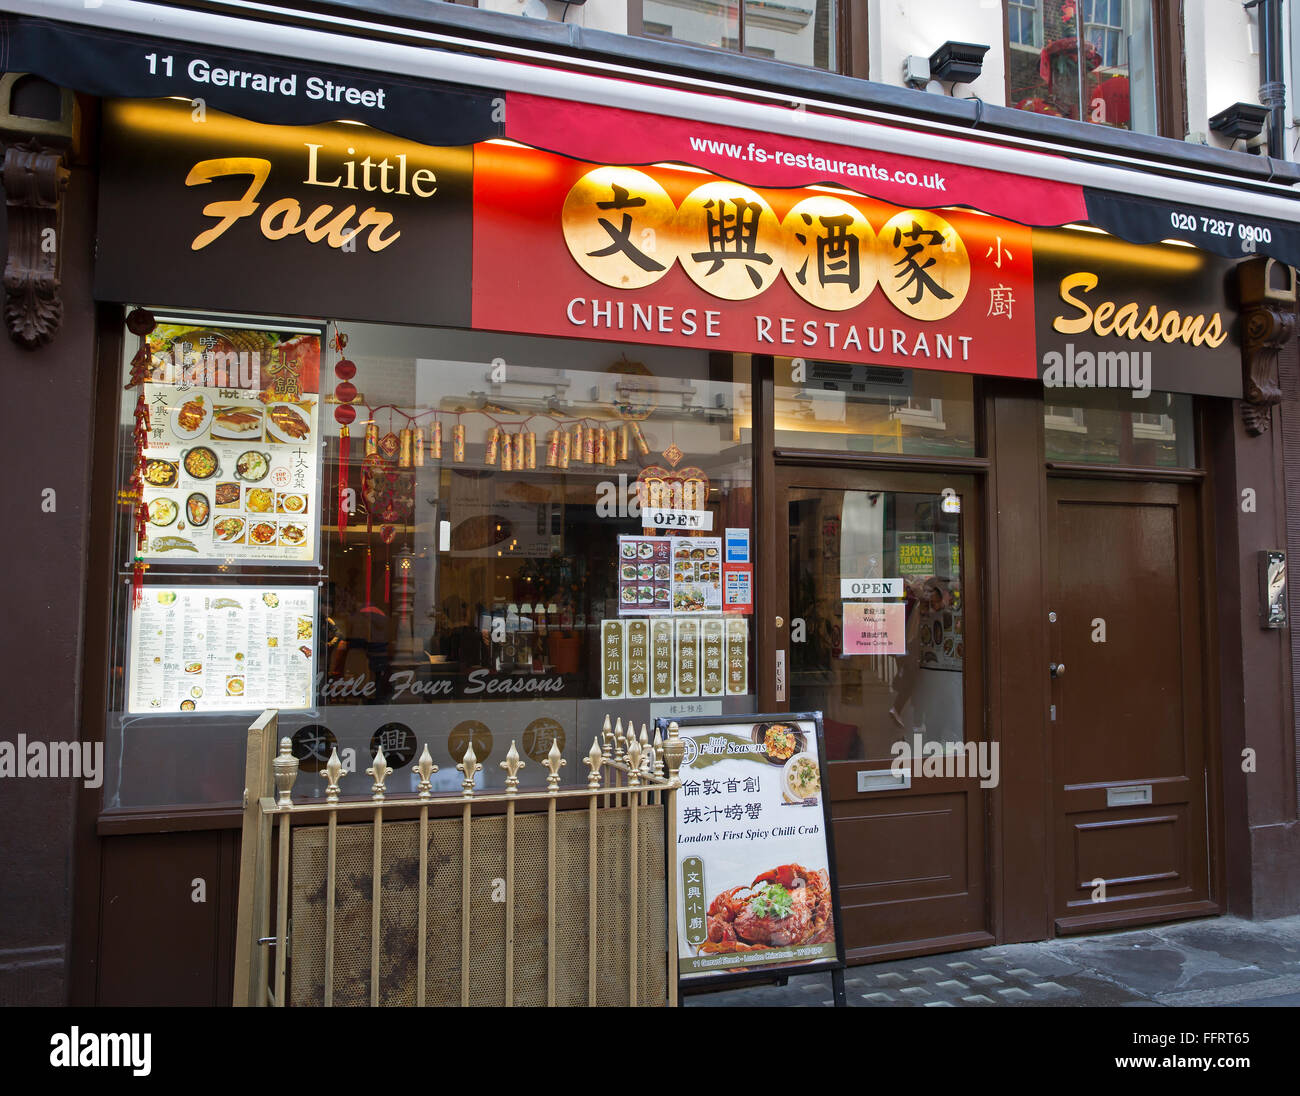 little four seasons chinese restaurant in china town london stock photo royalty free image. Black Bedroom Furniture Sets. Home Design Ideas